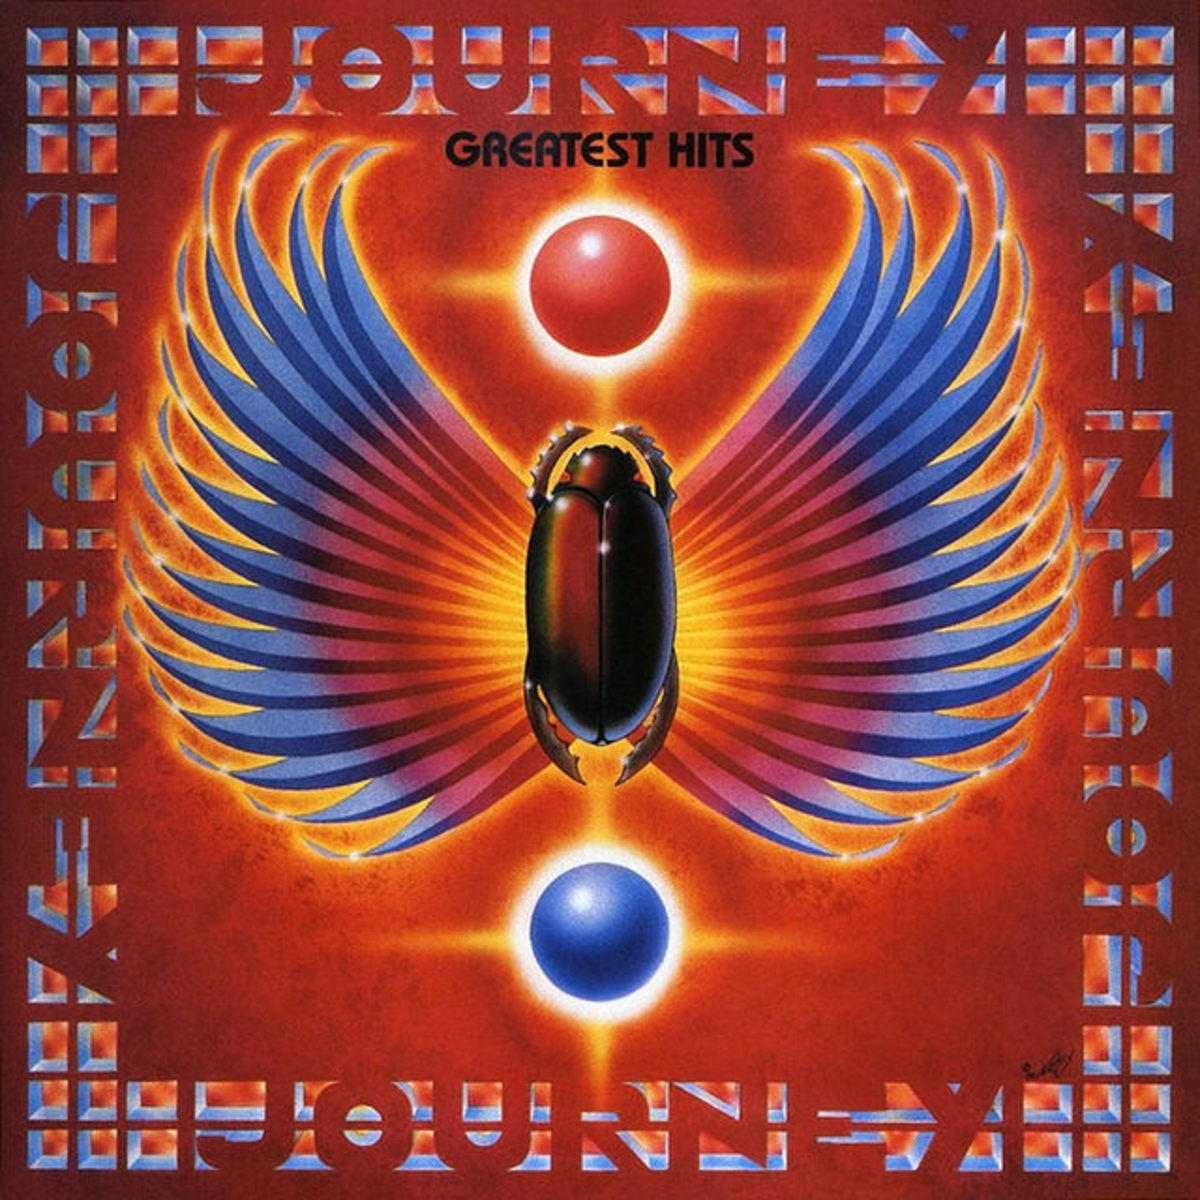 "Journey ""Greatest Hits"" Columbia Records OC 44493 12"" LP Vinyl Record US Pressing (1988) Album Cover Art by Alton Kelley"